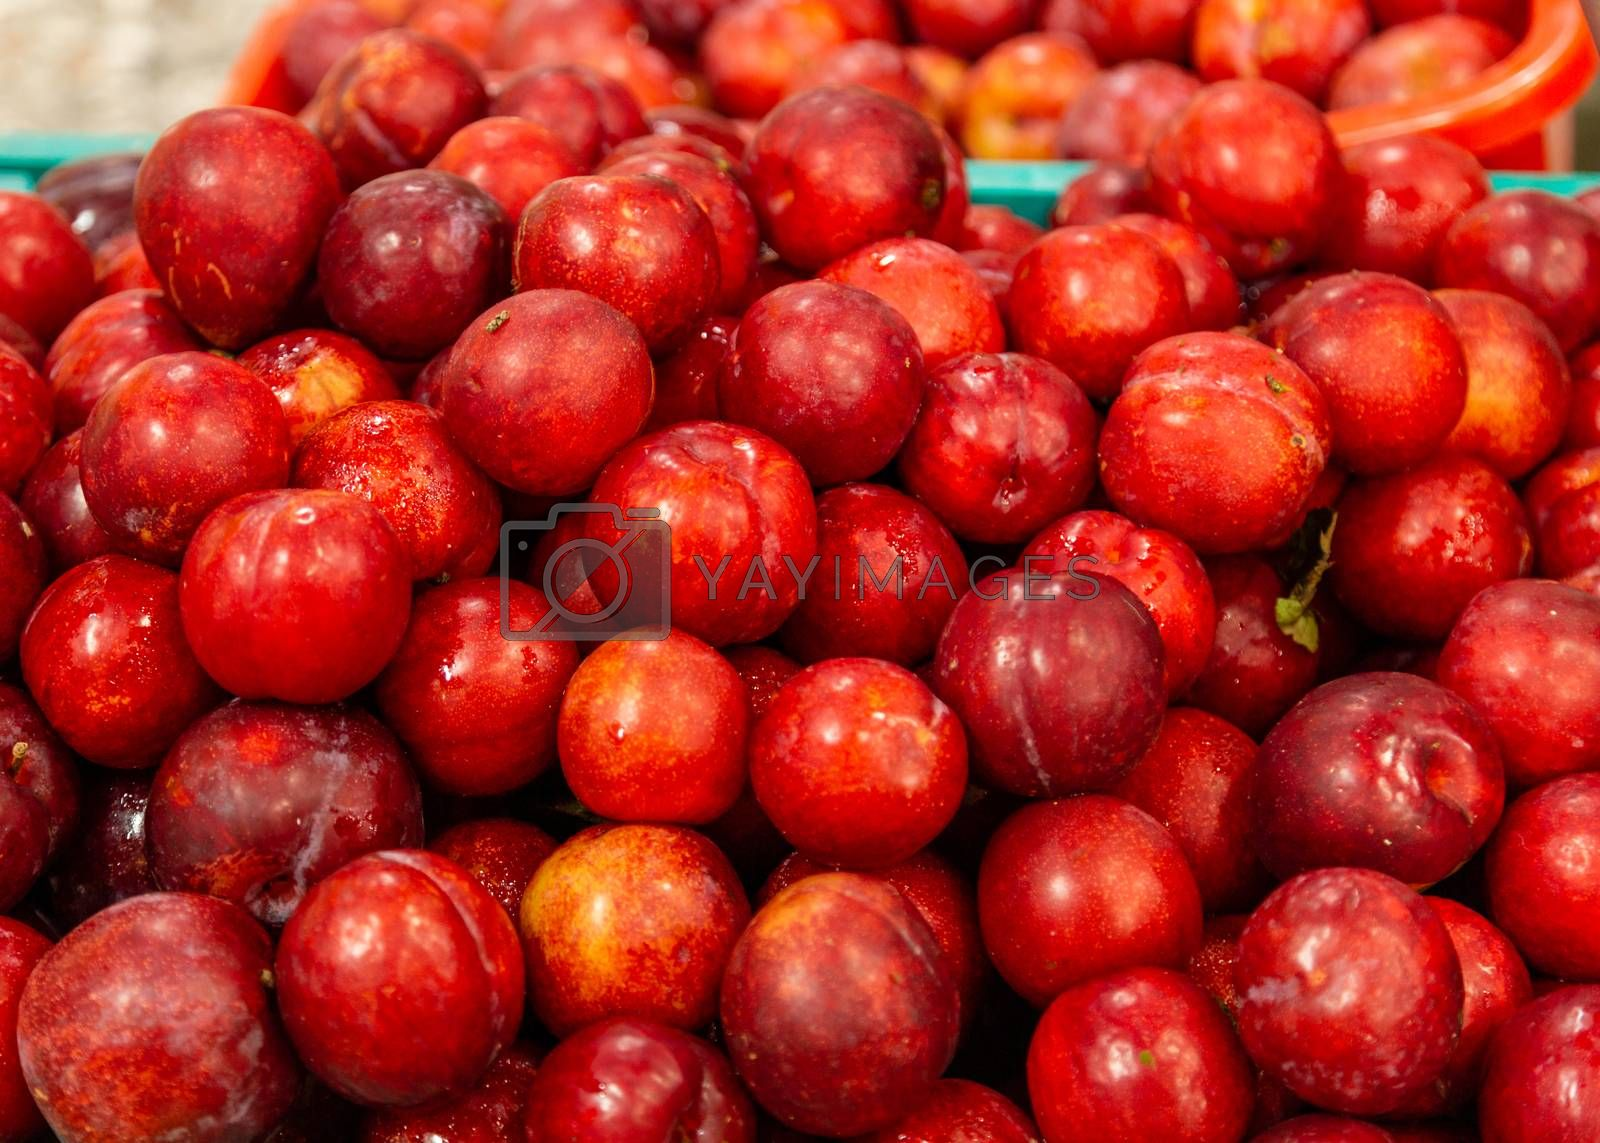 Fresh red plums by Images By Kenny